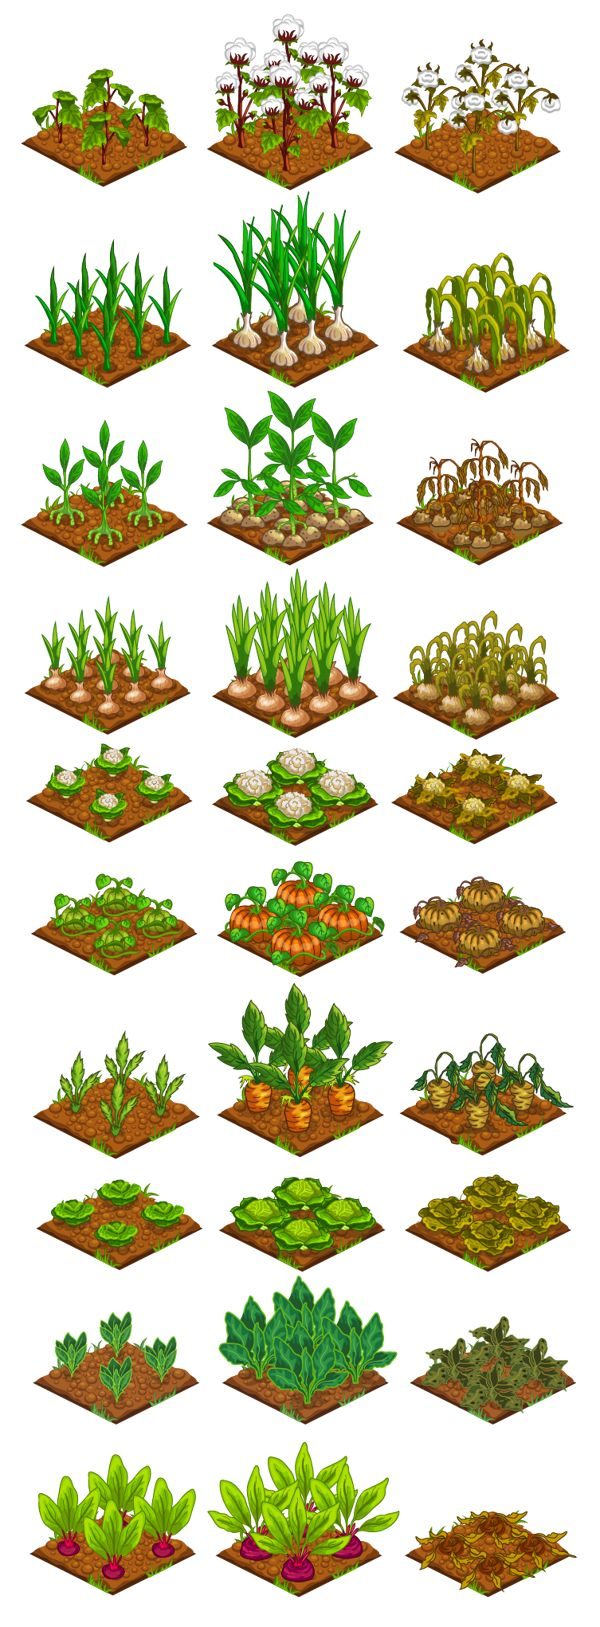 """Farmster"" Game Art by FULDEN BİLGİÇATAÇ, via Behance"